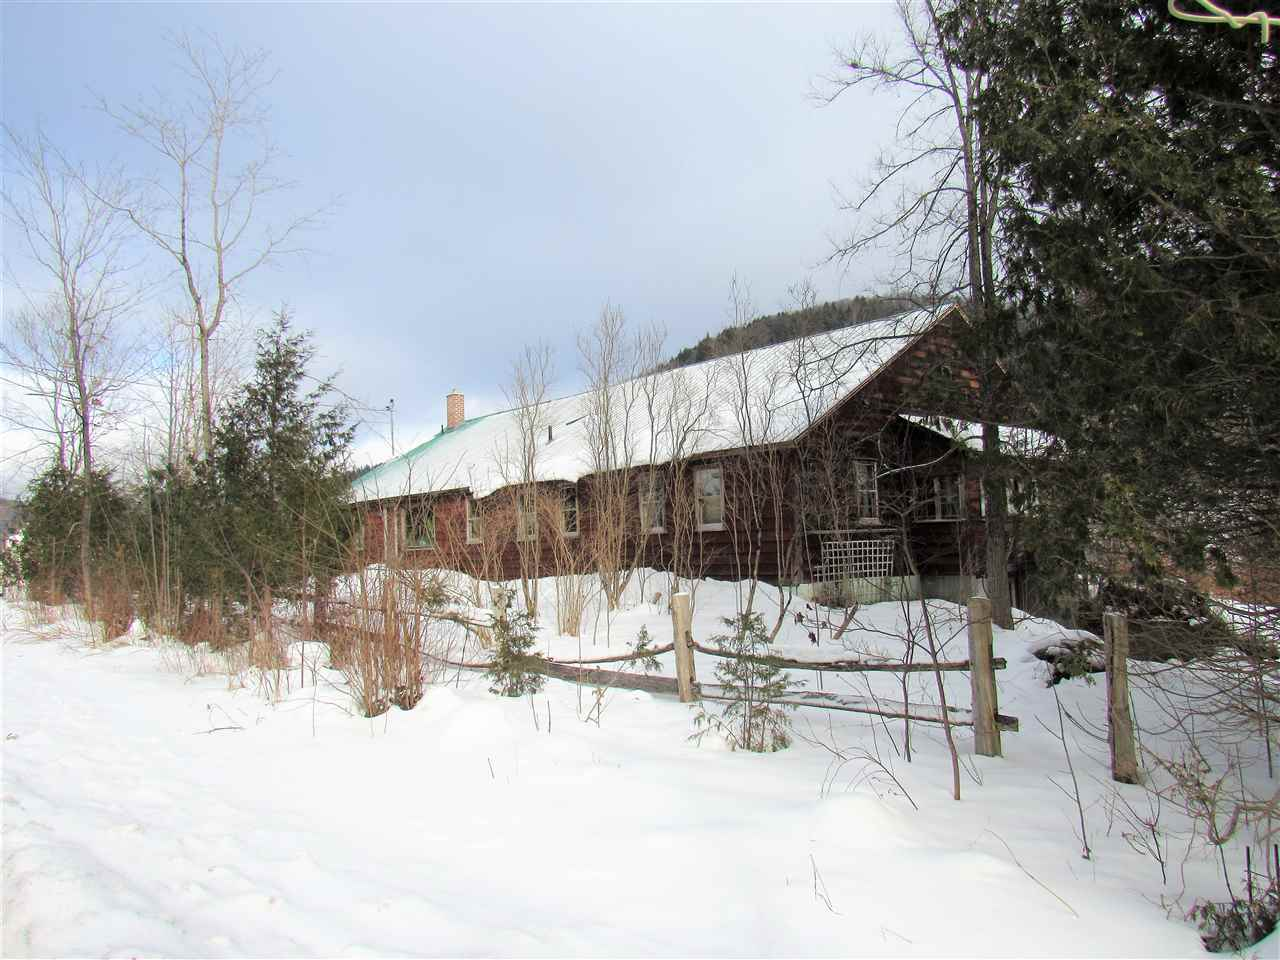 Chelsea VTHorse Farm | Property  on The First Branch of the White River